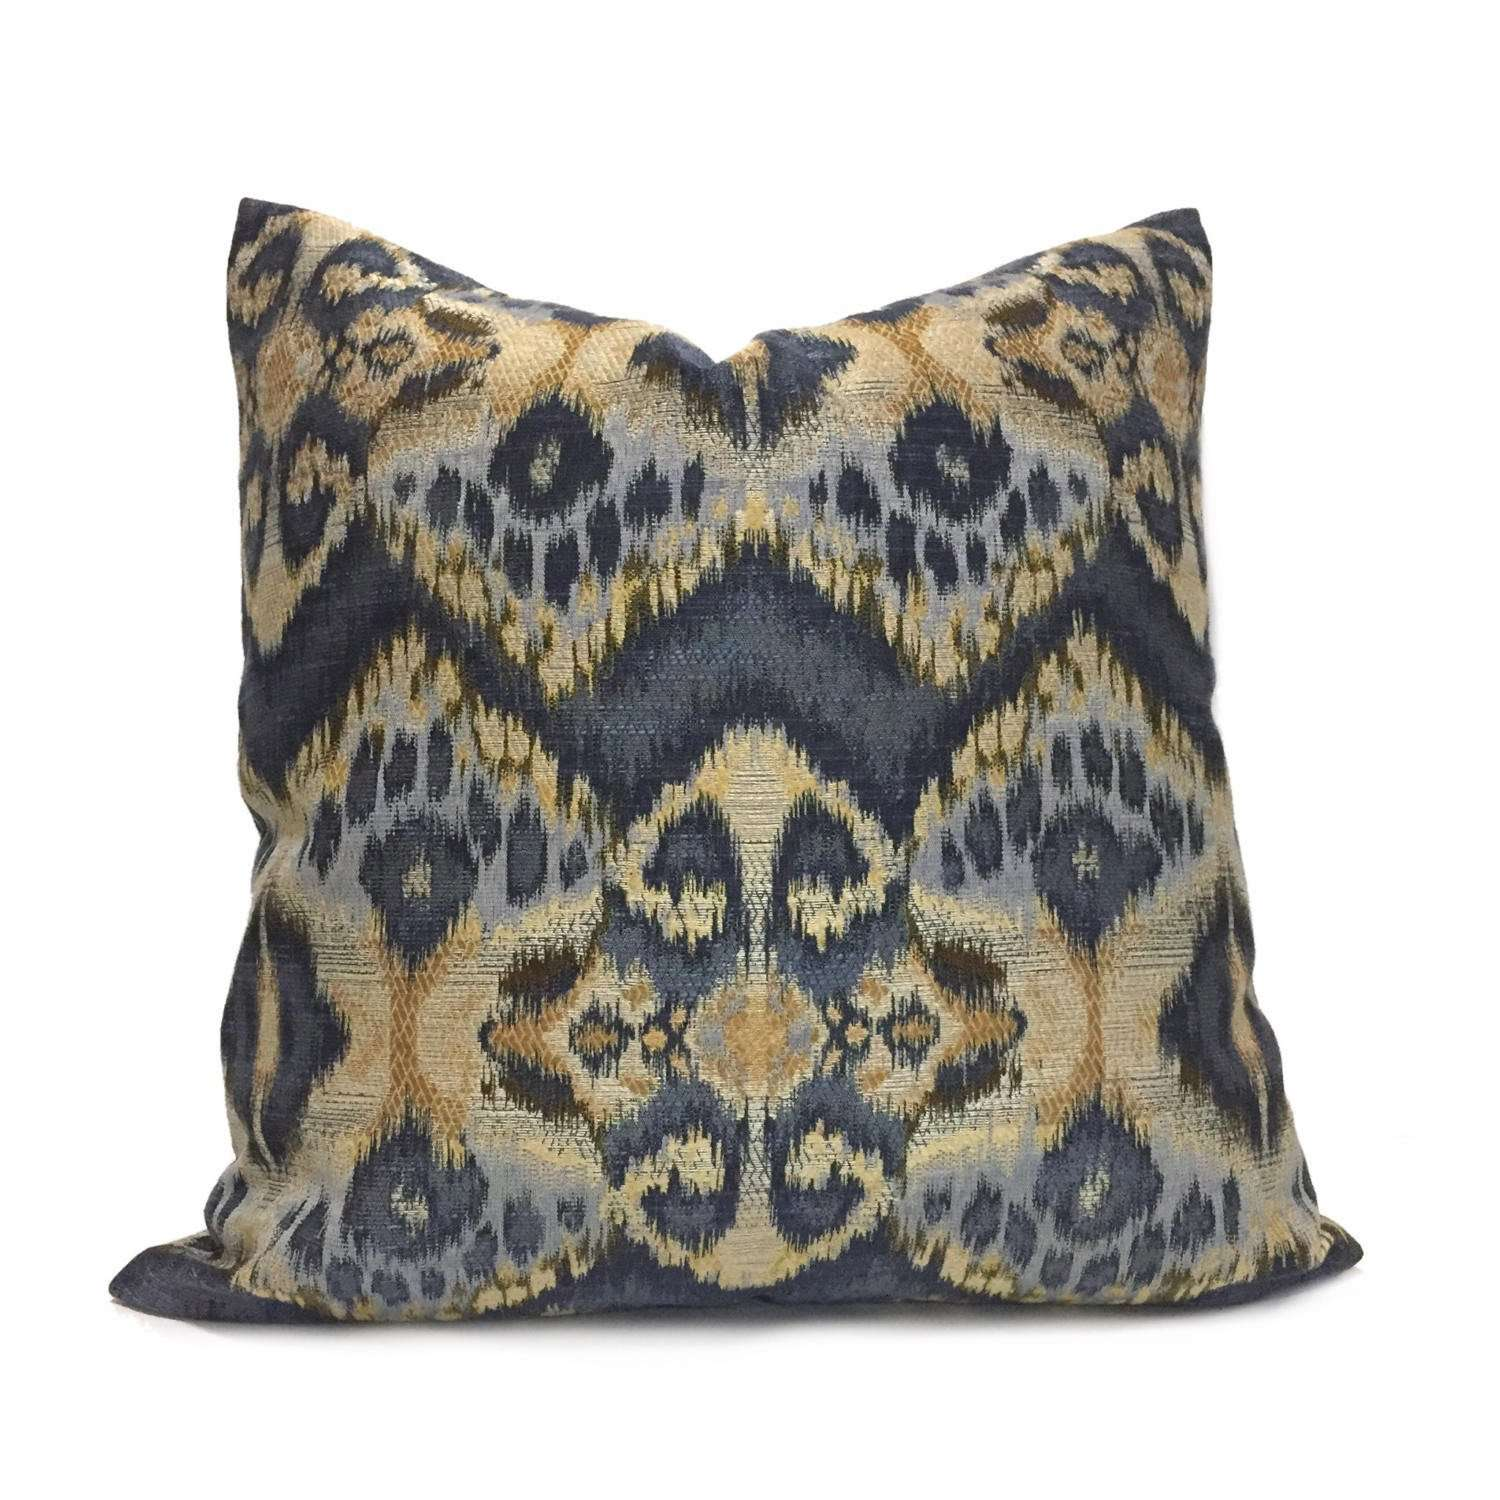 Robert Allen Rhythm Waves Blue Ikat Tribal Ethnic Pattern Pillow Cover by Aloriam